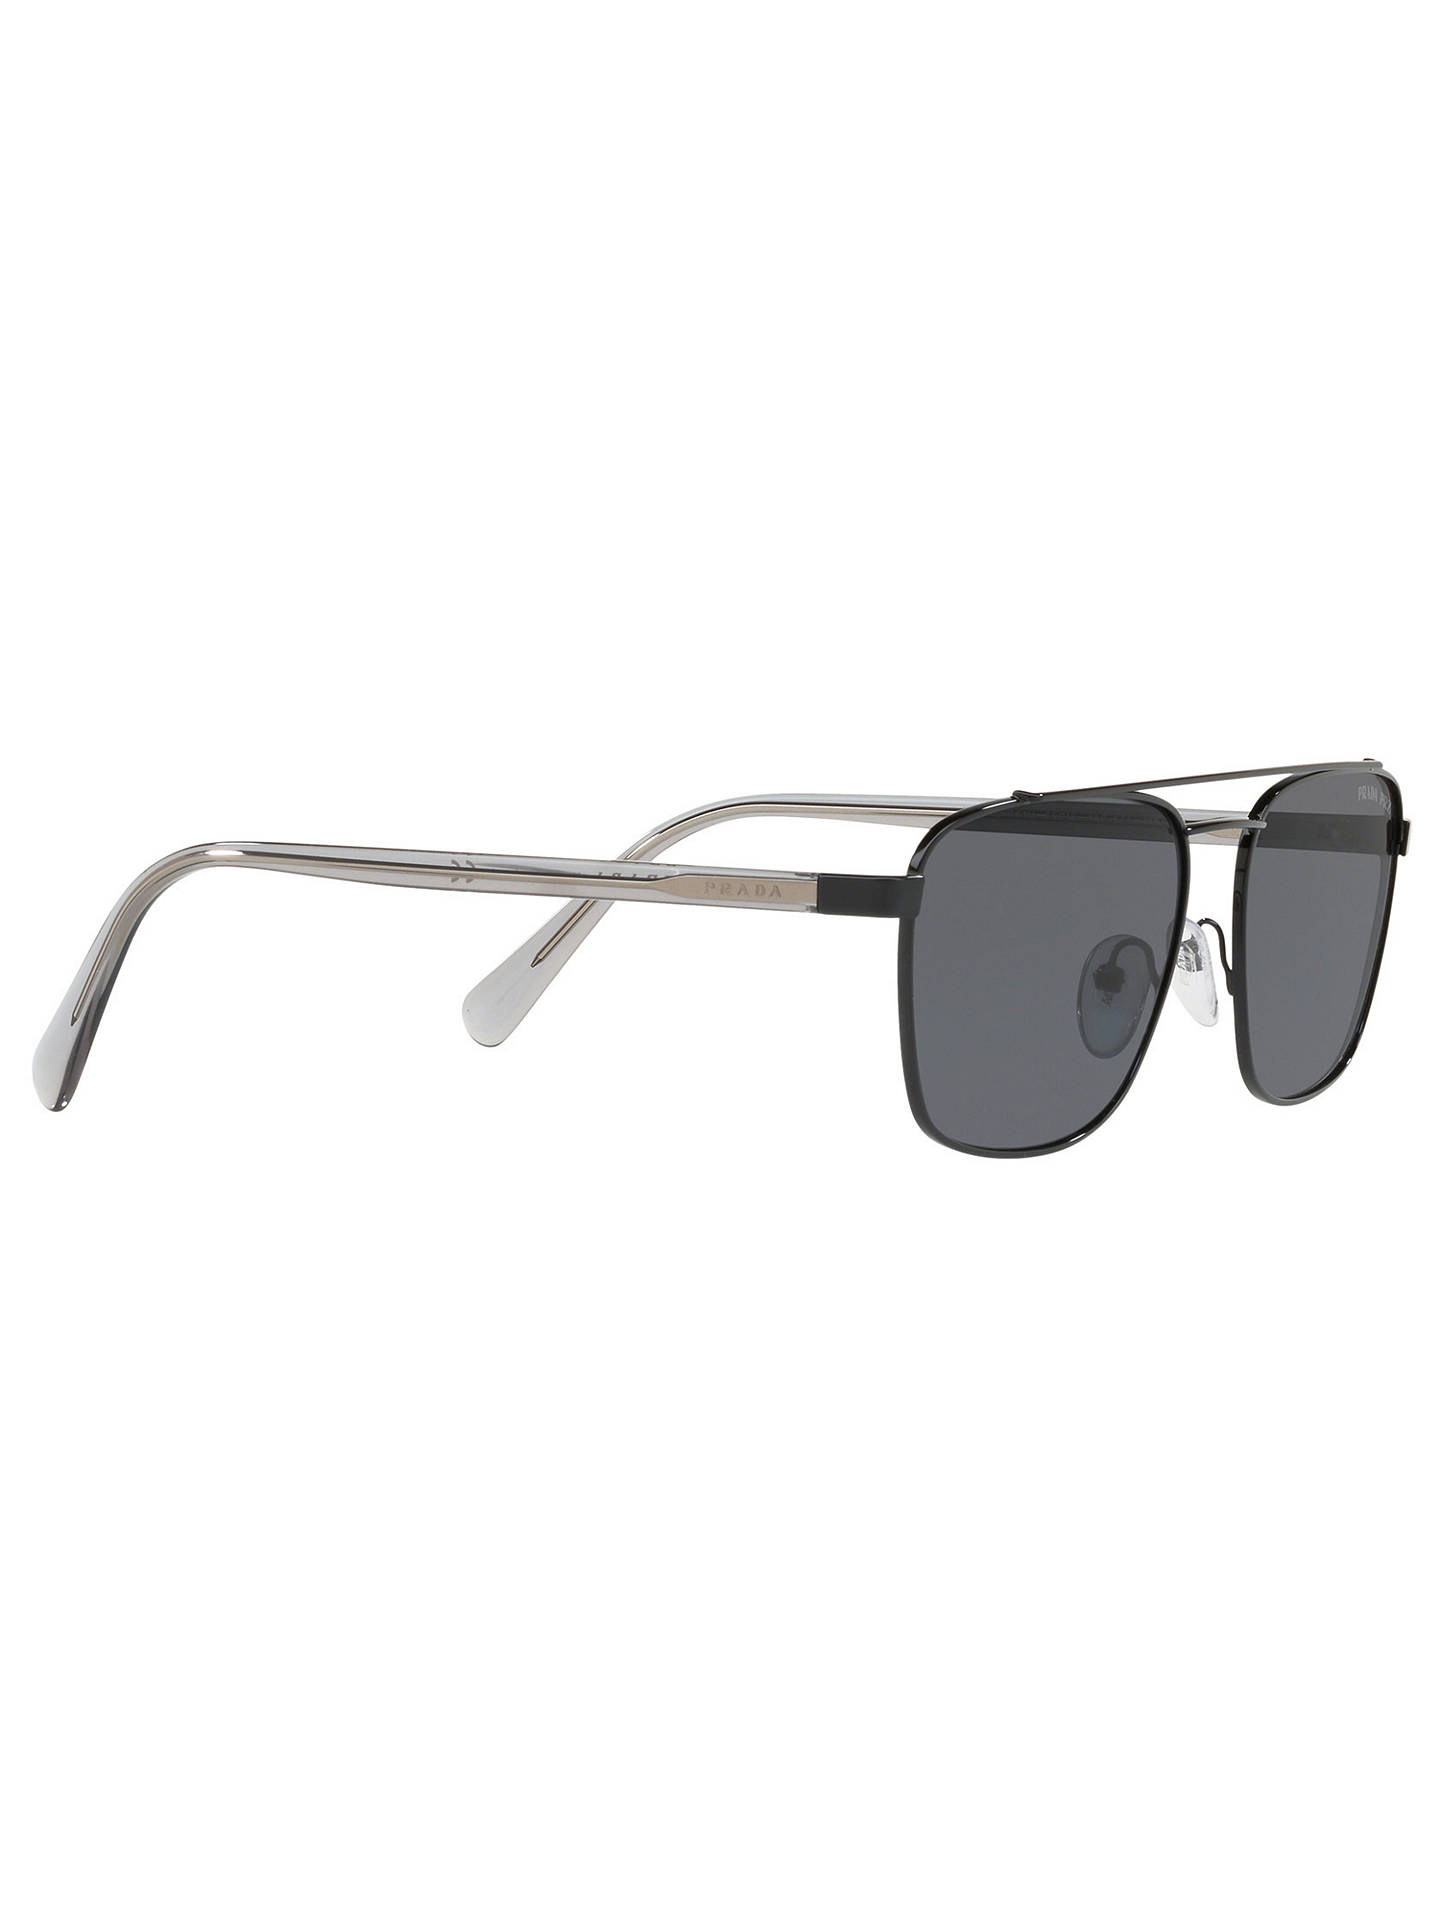 13985aa940 ... BuyPrada PR 61US Men s Polarised Square Sunglasses